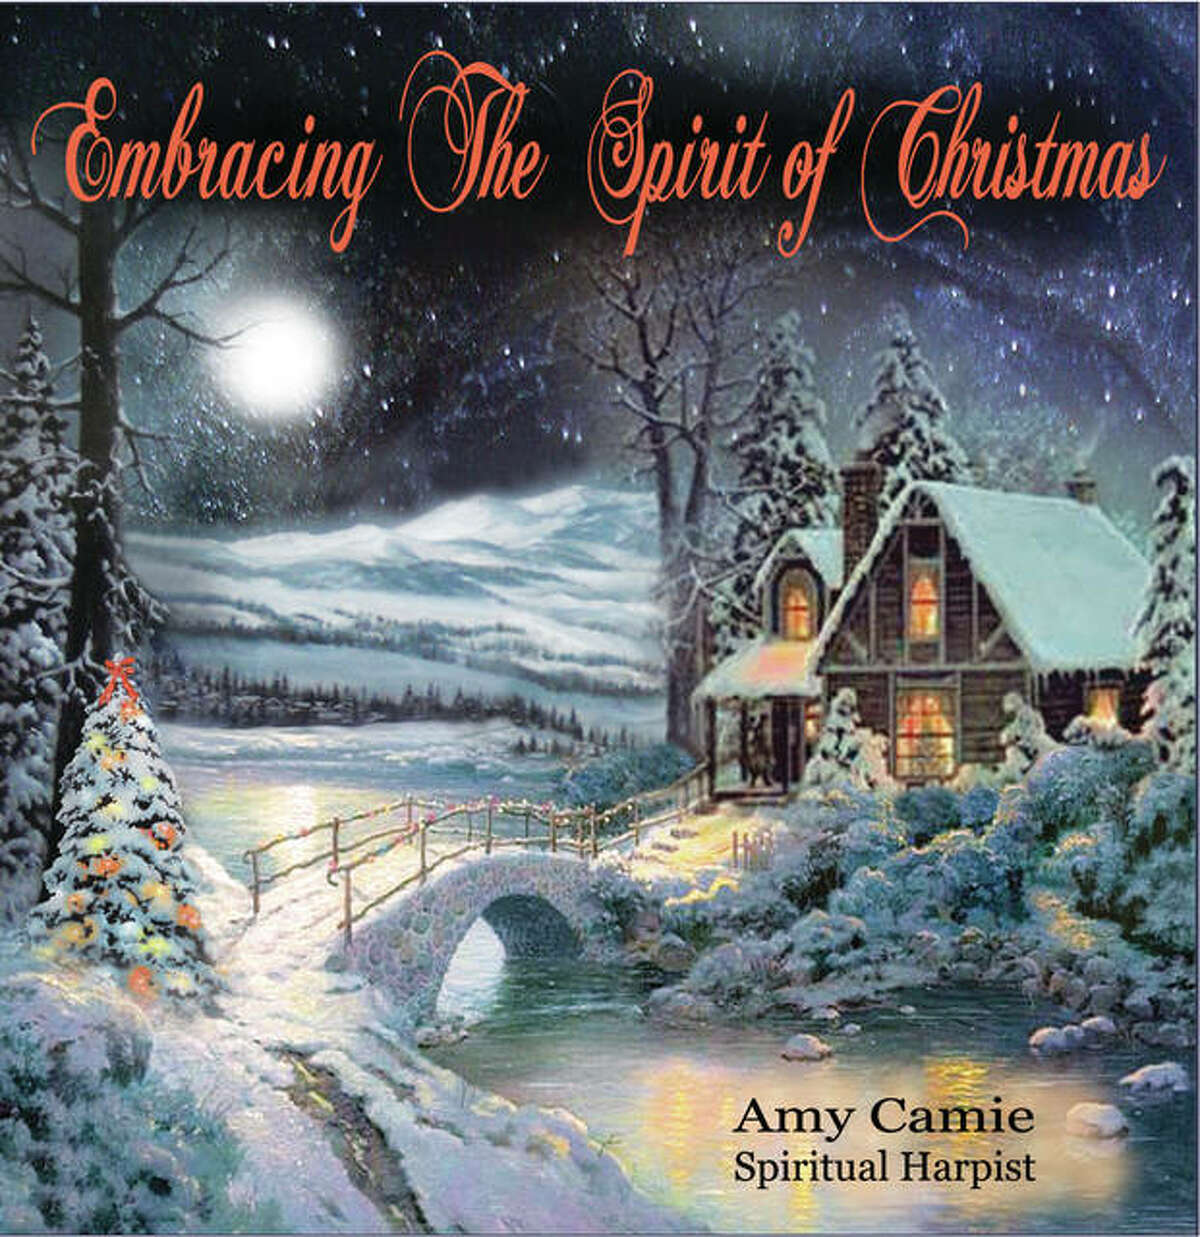 """Former Godfrey resident Amy Camie will present a concert of the same name as her CD, """"Embracing The Spirit of Christmas,"""" at 7 p.m. Saturday, Dec. 16, at Eliot Unitarian Chapel in Kirkwood, Missouri. The concert is free, but love donations are accepted. CDs cost $15. For more information or to purchase a CD, visit www.amycamie.com."""